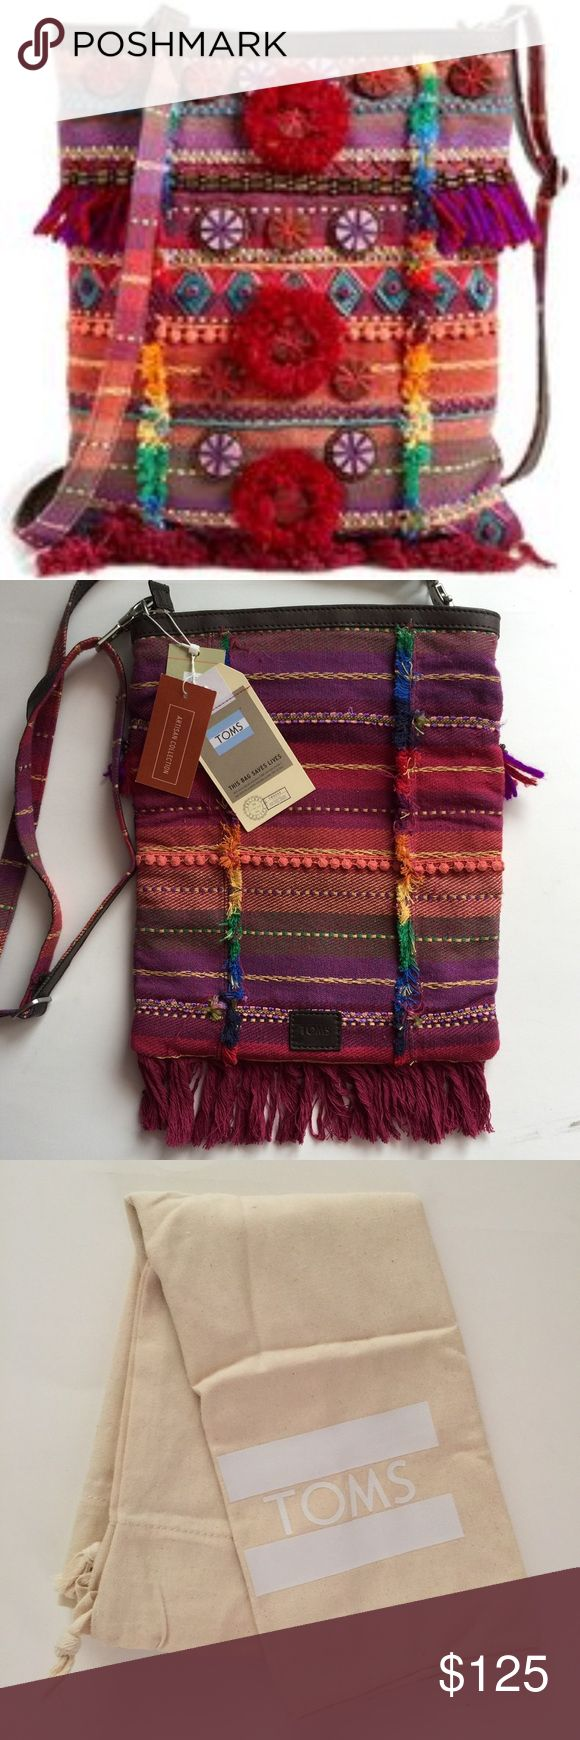 "TOMS Embellished Festival Cross-body Bag NWT rare with embroidery and tassels. Bohemian free spirited bag. Detach strap and fold in half for a clutch! Zippered closure with interior zippered pocket and two other small pockets. 9"" x 12.5"". TOMS Bags Crossbody Bags"